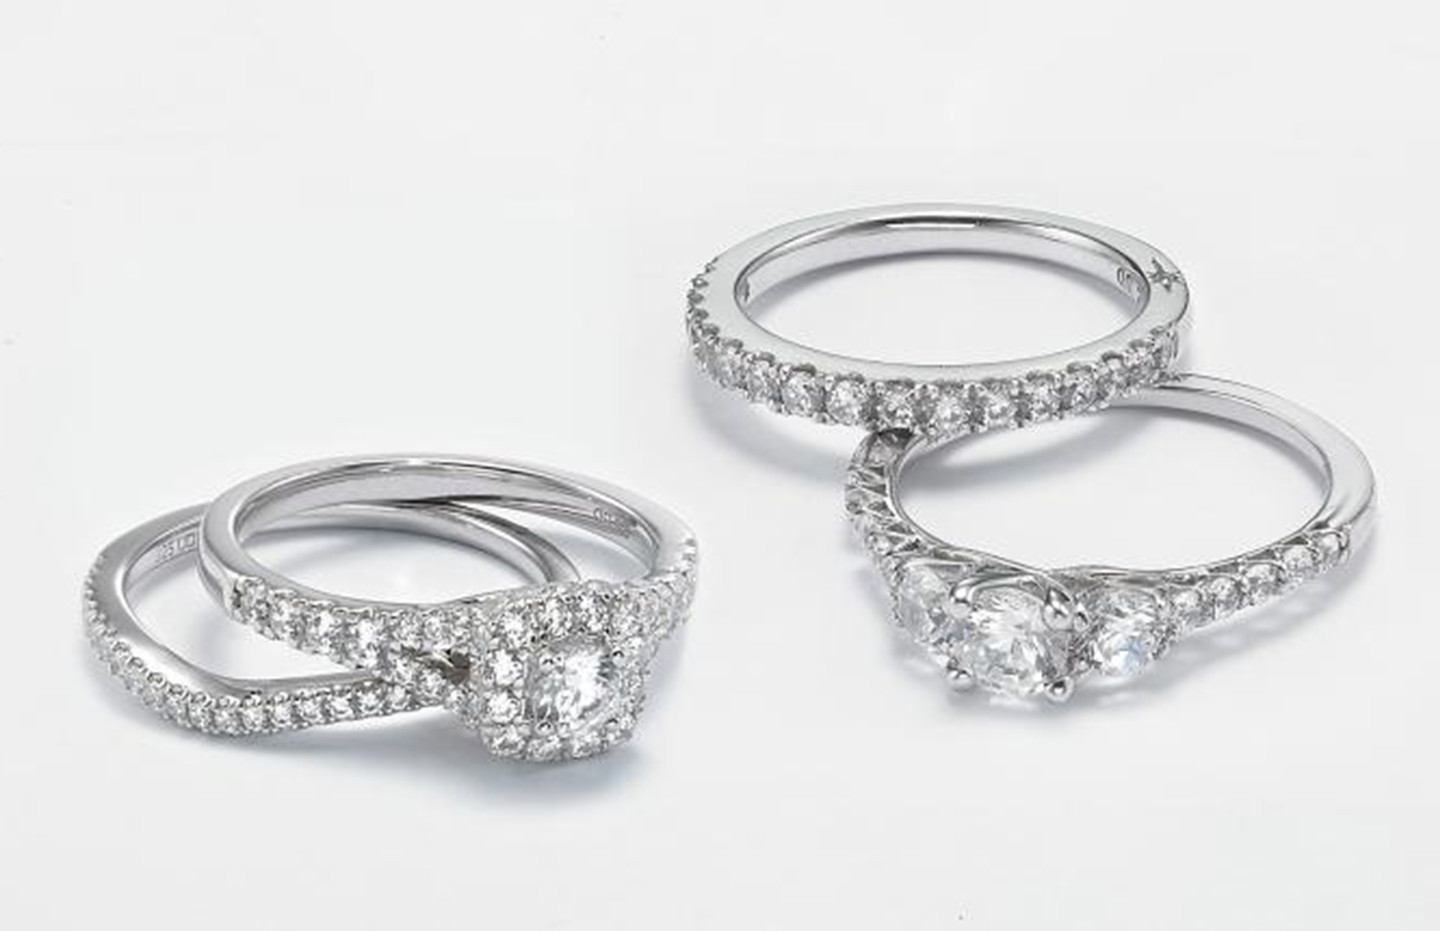 ca98bf6d04ad The Four Cs of Diamonds - Macy's Guide to Engagement Rings Online